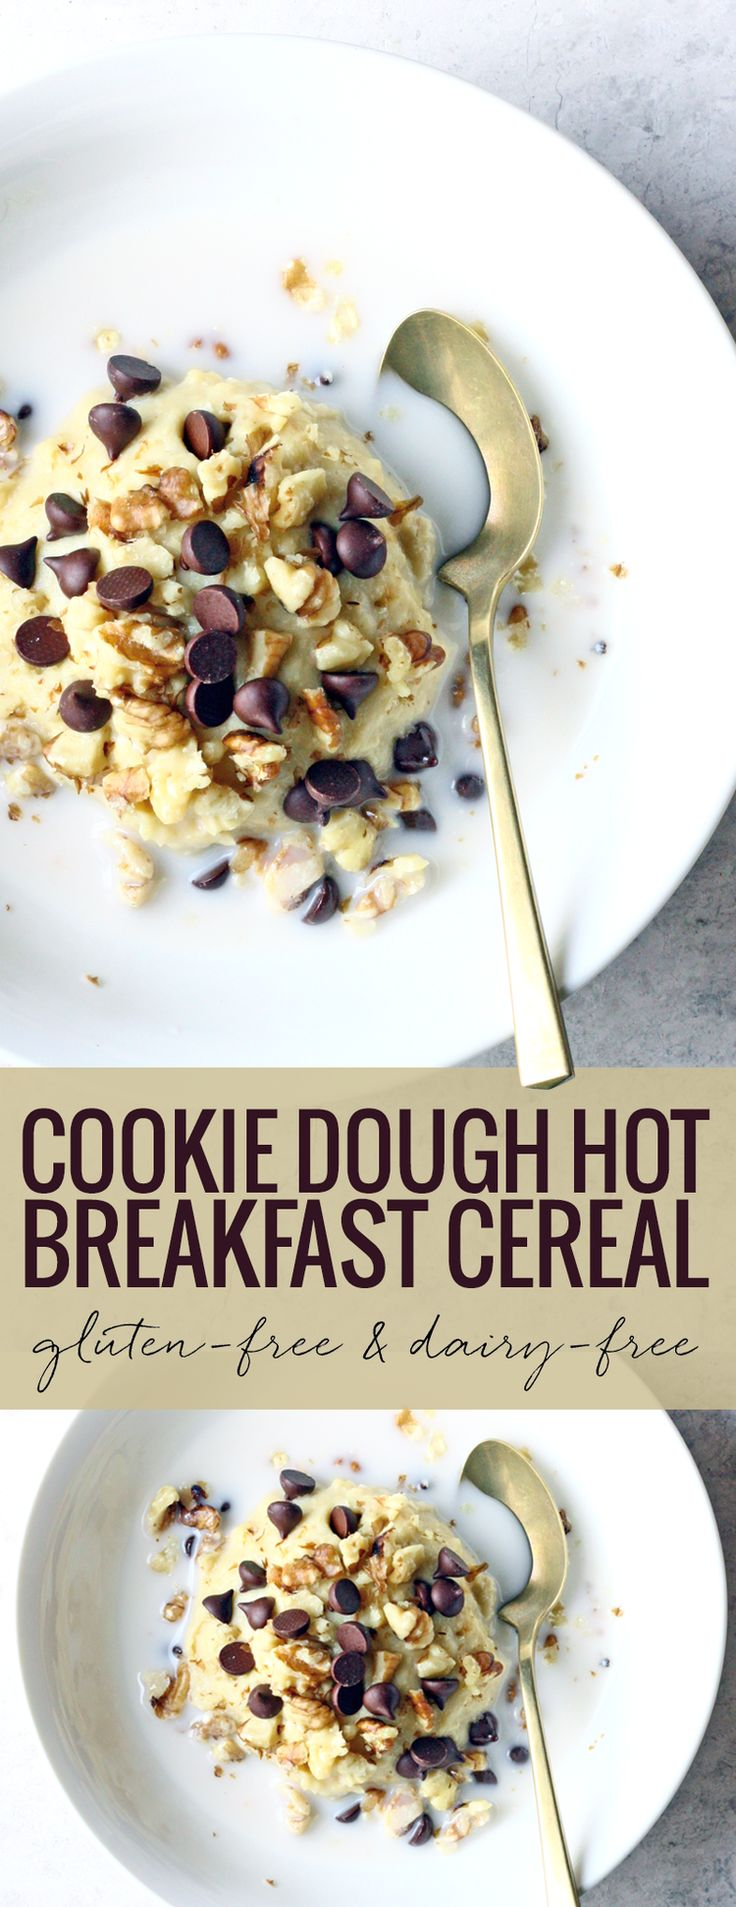 Chocolate Chip Cookie Dough Hot Breakfast Cereal